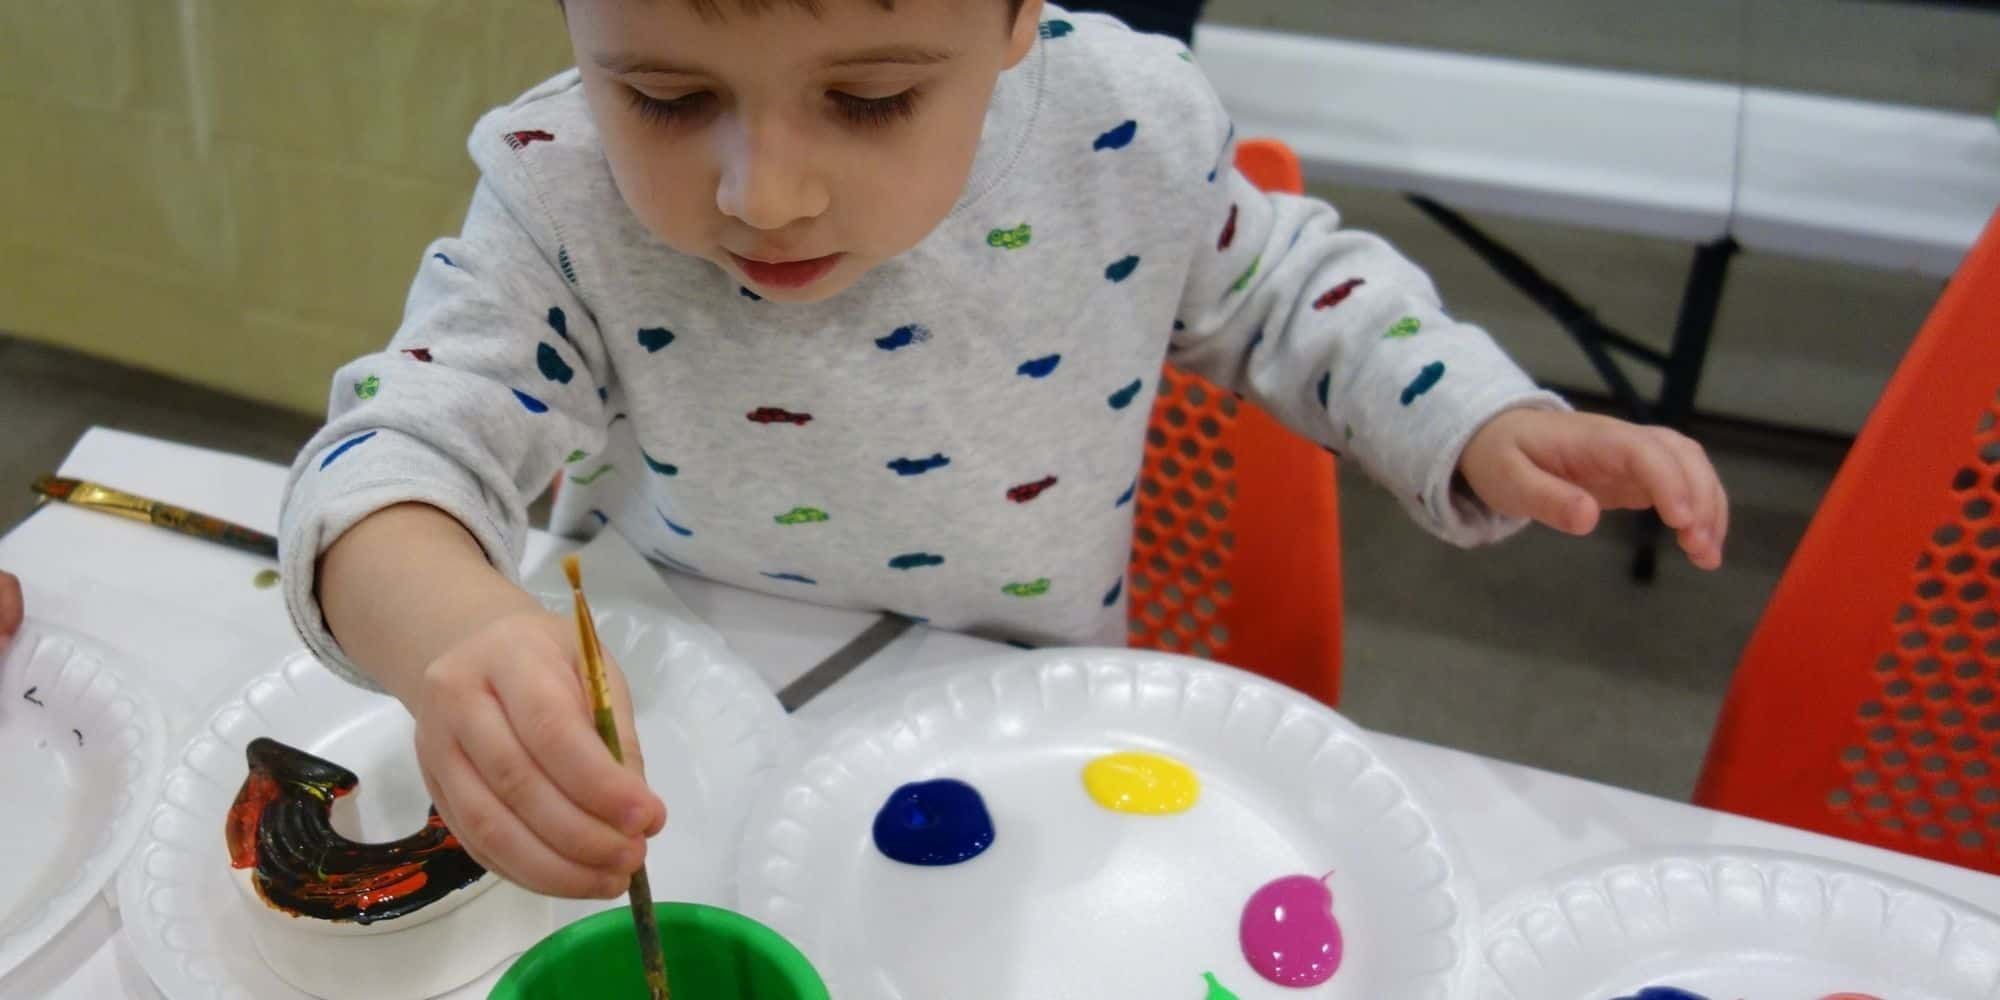 Kids build confidence with Art